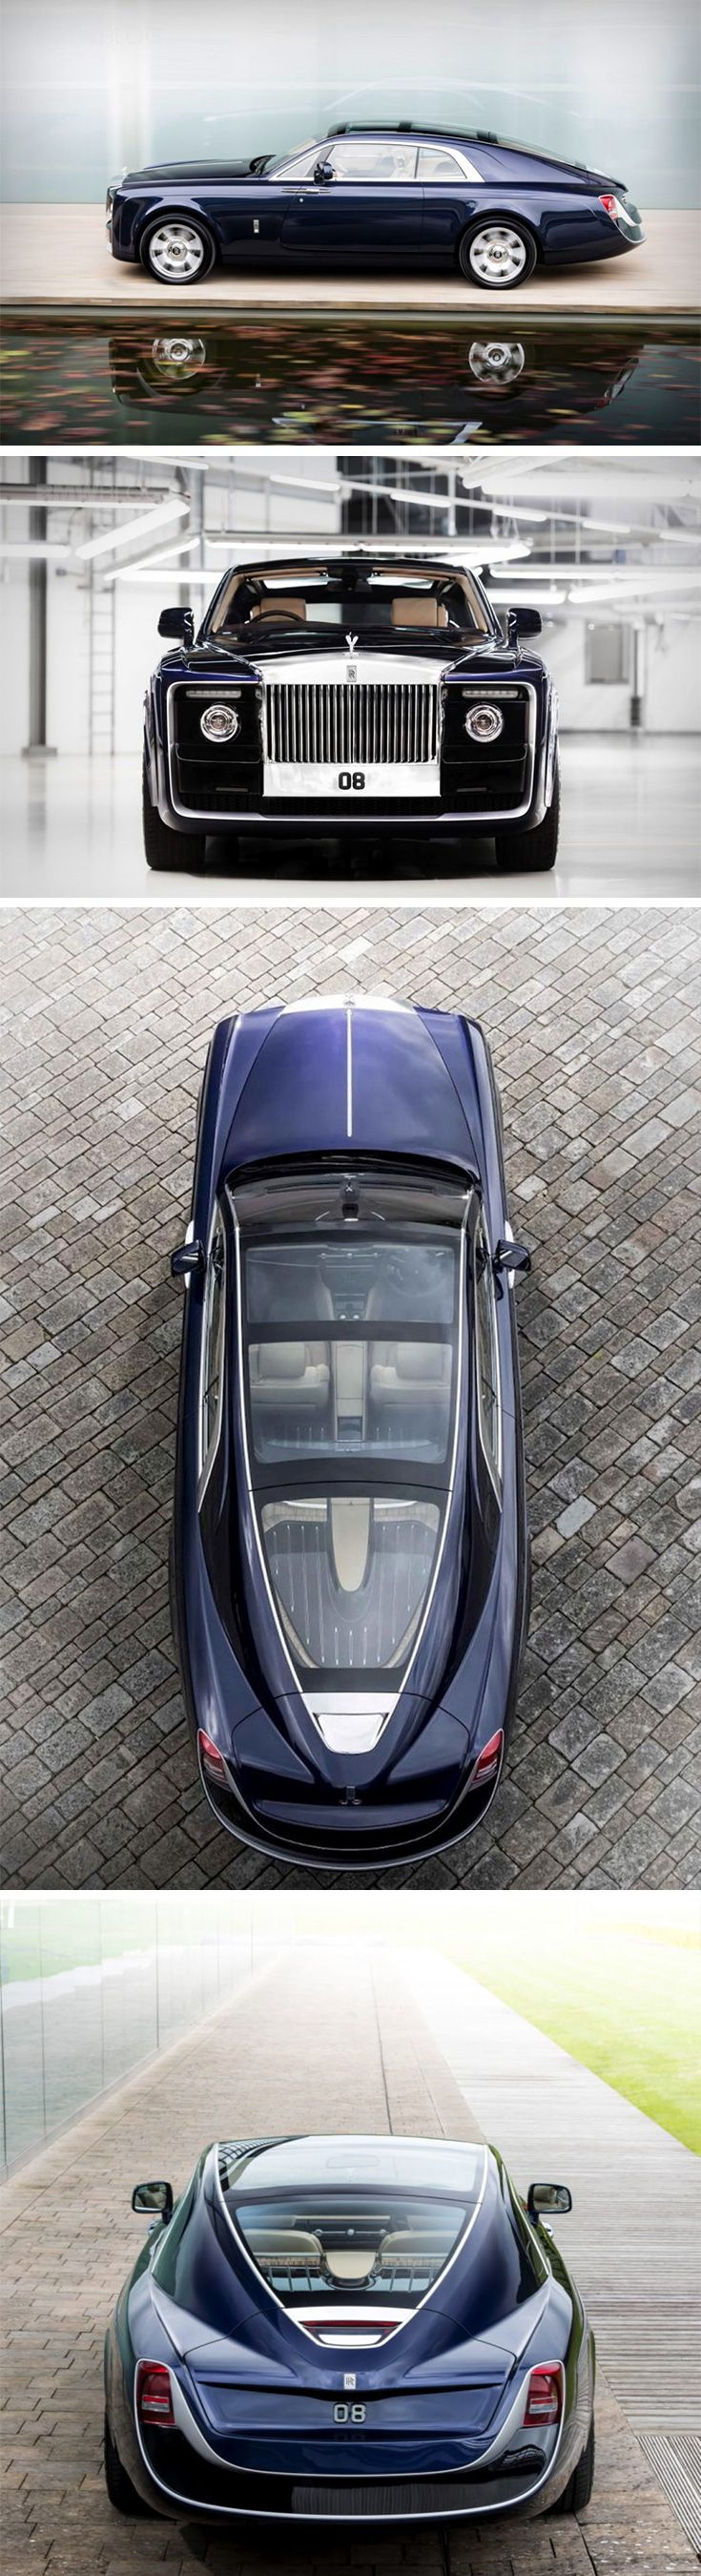 This stunner of a car isn't for sale. The Rolls Royce Sweptail isn't a concept, but rather, it's tailor-made for one RR patron who wanted a luxury car that was comparable to that of a yacht. Designed with Rolls Royce's signature styling on the front, you'